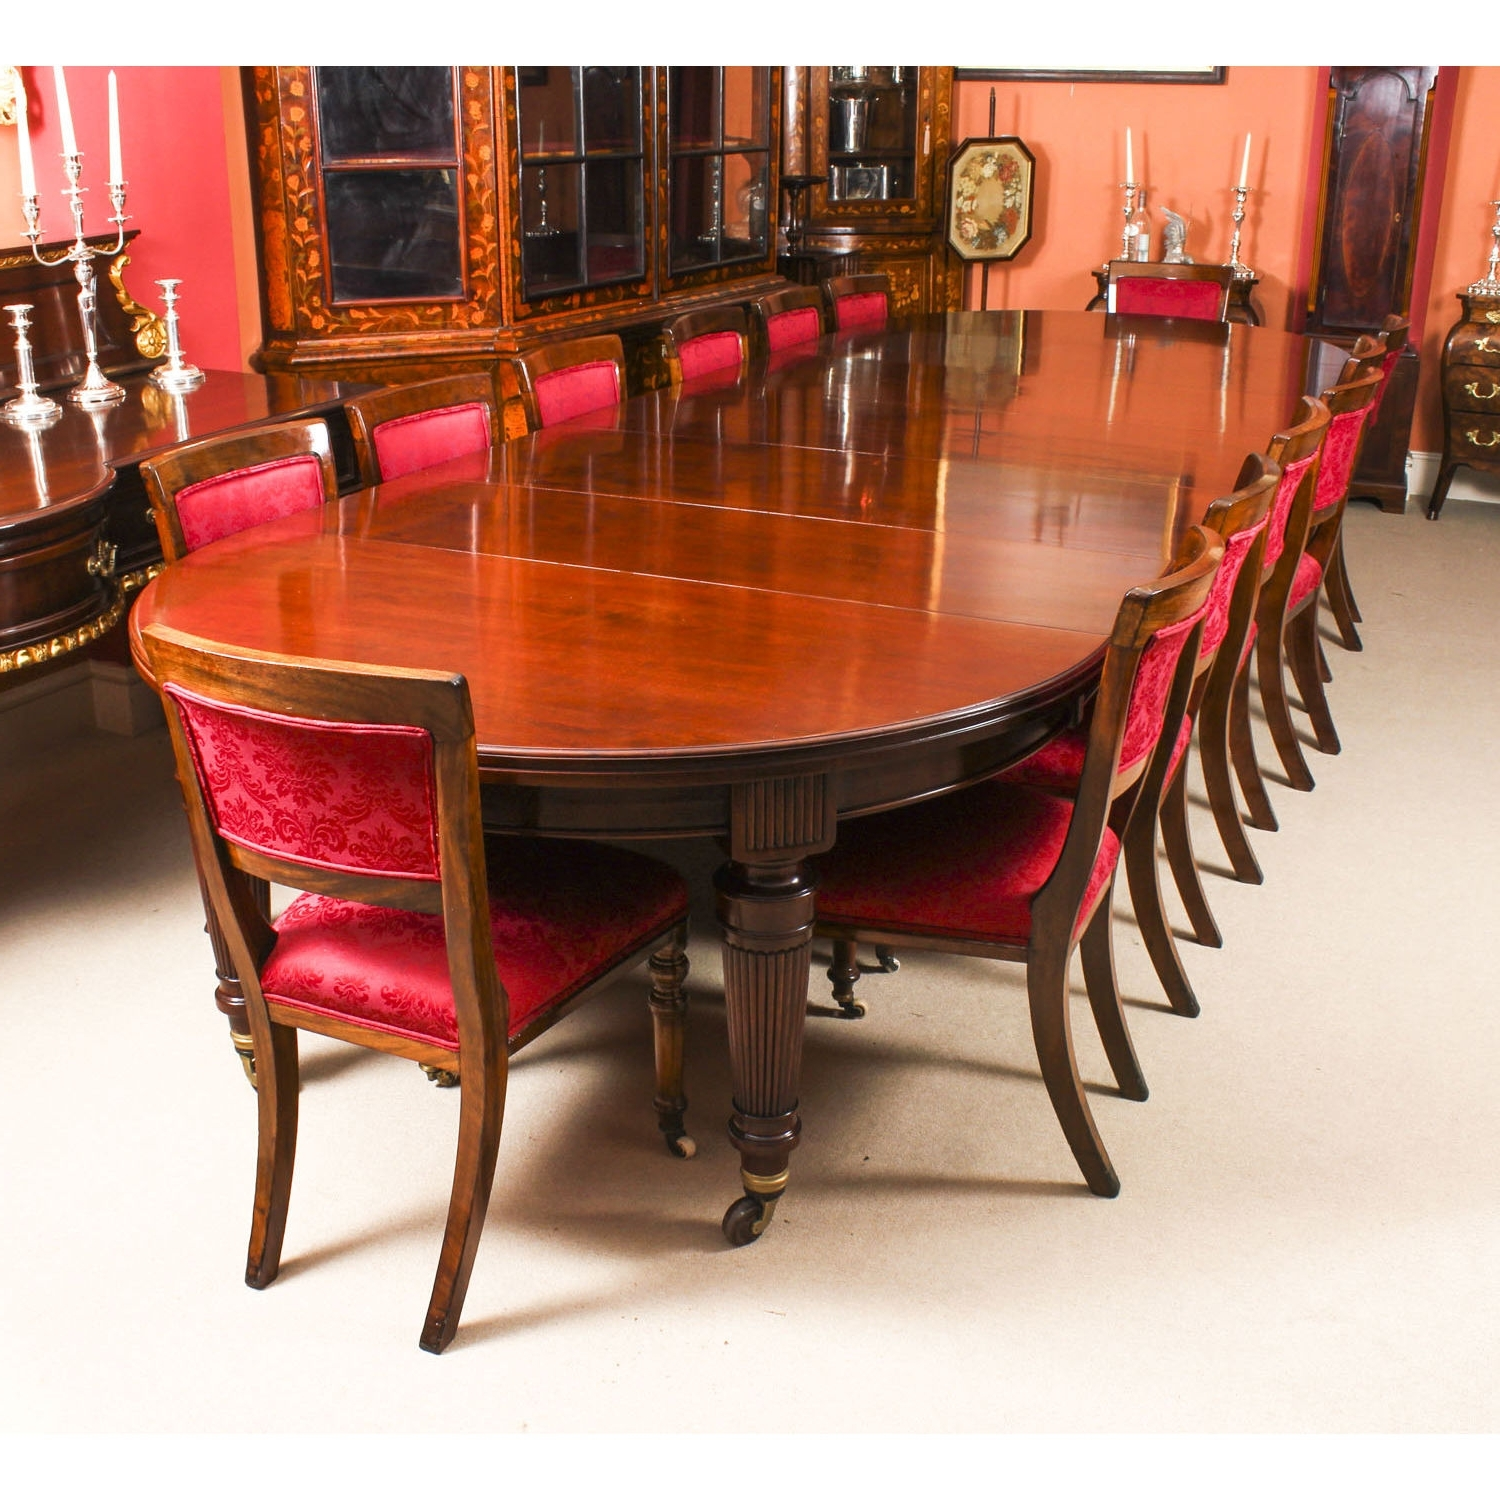 Antique Victorian Circular Extending Dining Table & 14 Chairs 19Th C Intended For Most Recent Circular Extending Dining Tables And Chairs (View 4 of 25)